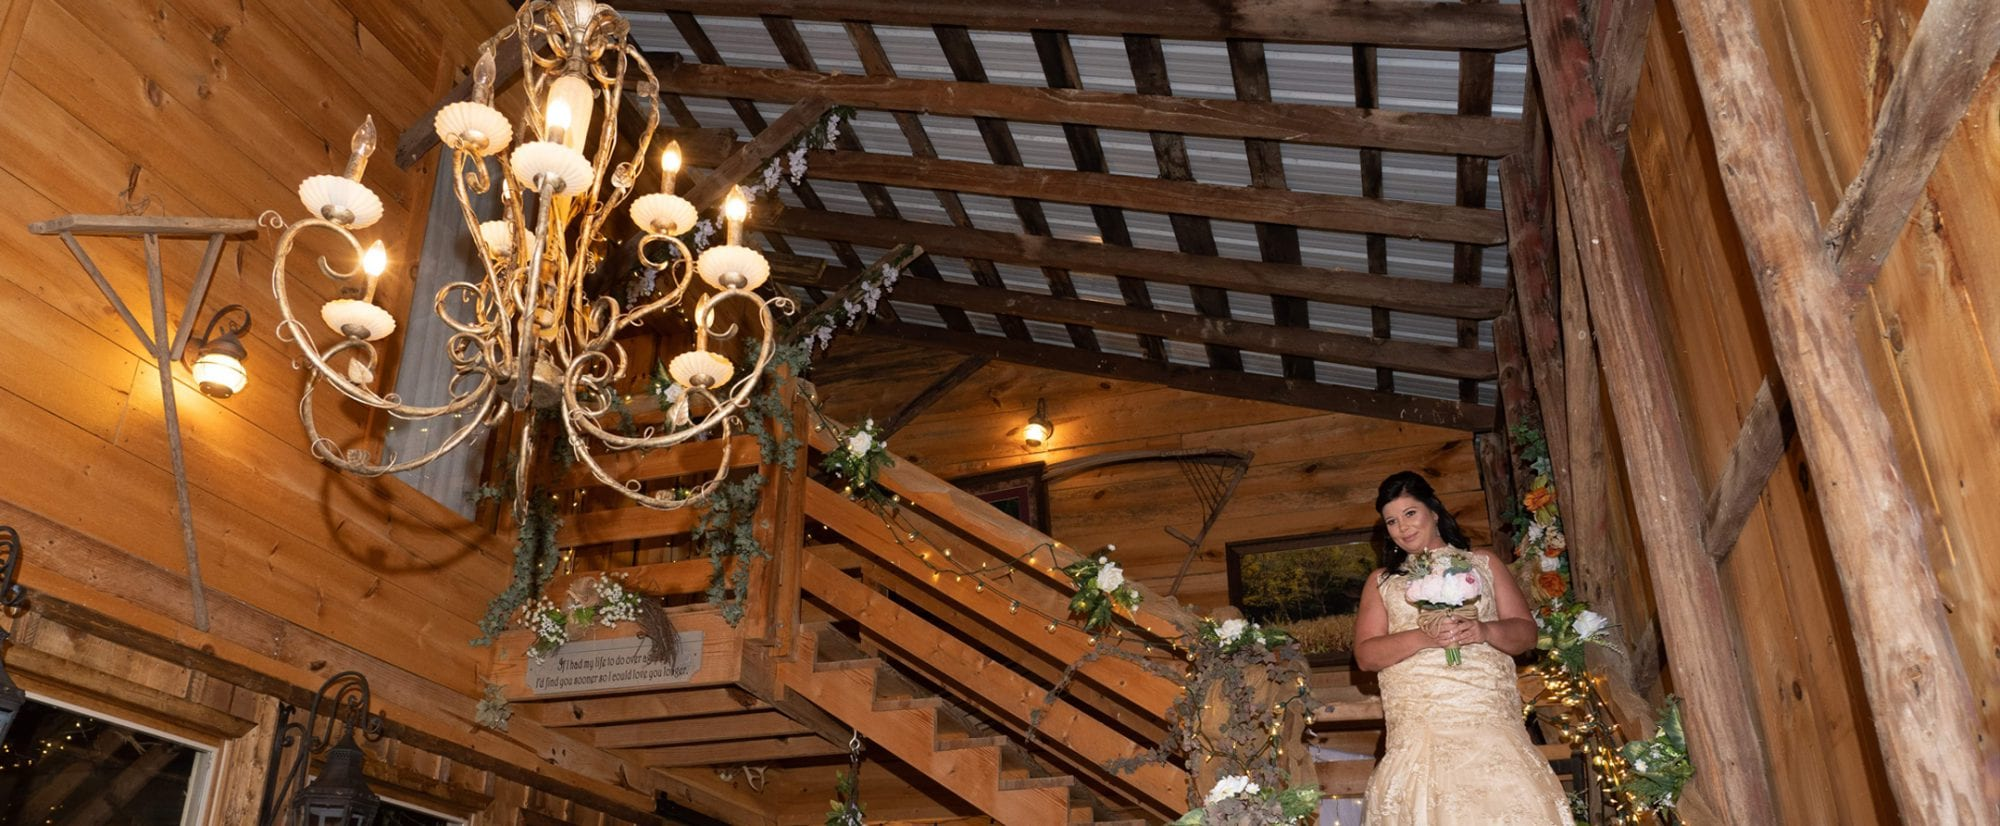 The Chandelier wedding ceremony site in Pigeon Forge, TN